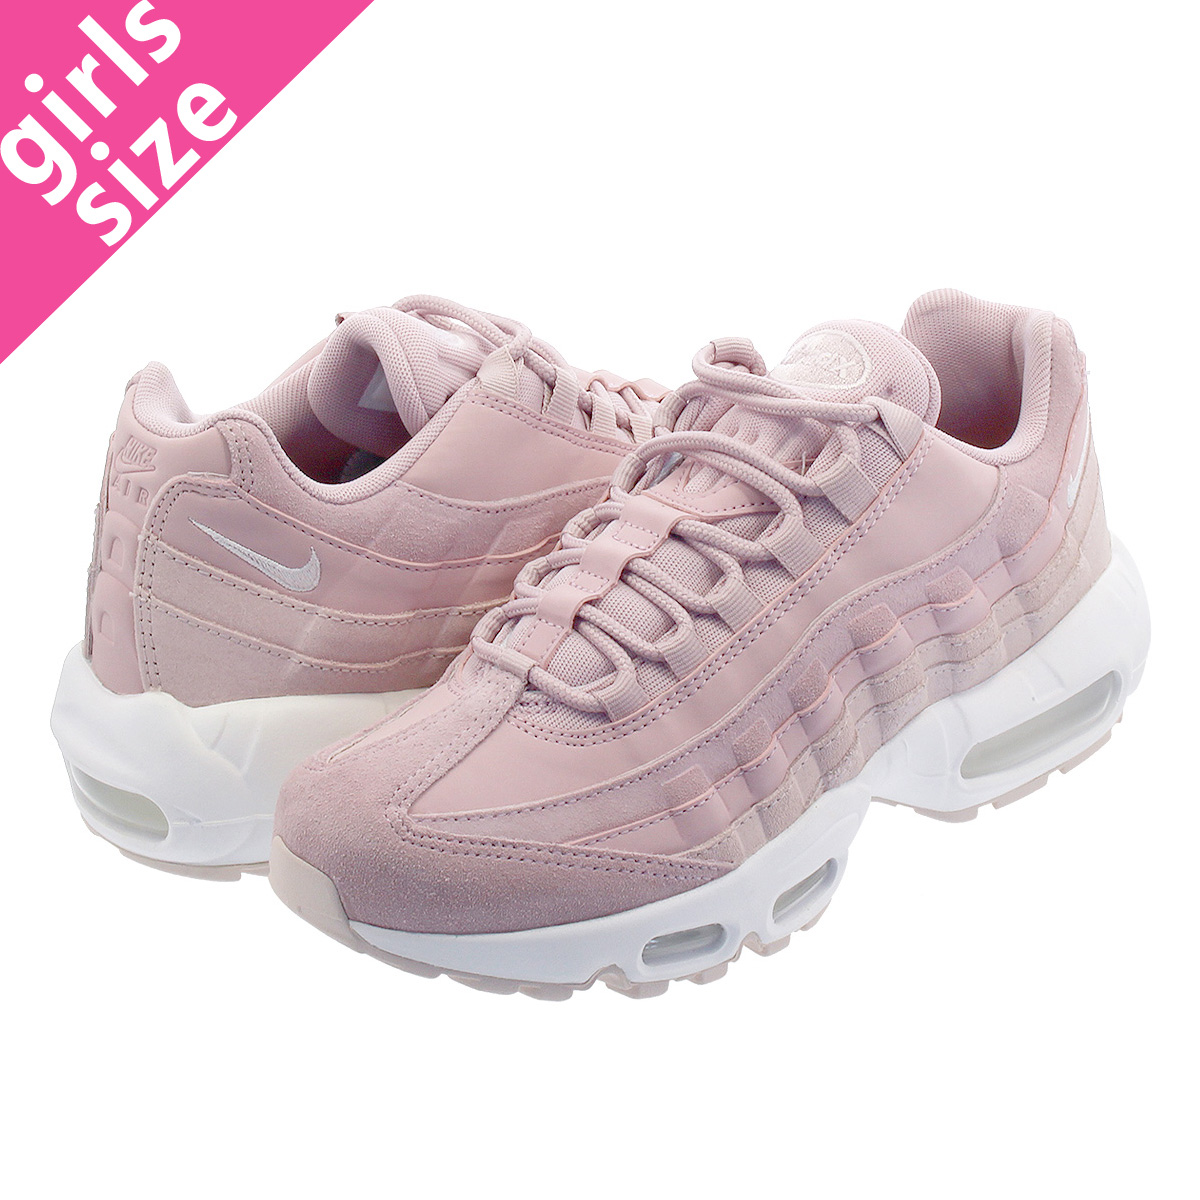 date de sortie f7dca 97aa3 NIKE WMNS AIR MAX 95 PRM Nike women Air Max 95 premium PLUM CHALK/BARELY  ROSE/SUMMIT WHITE 807,443-503